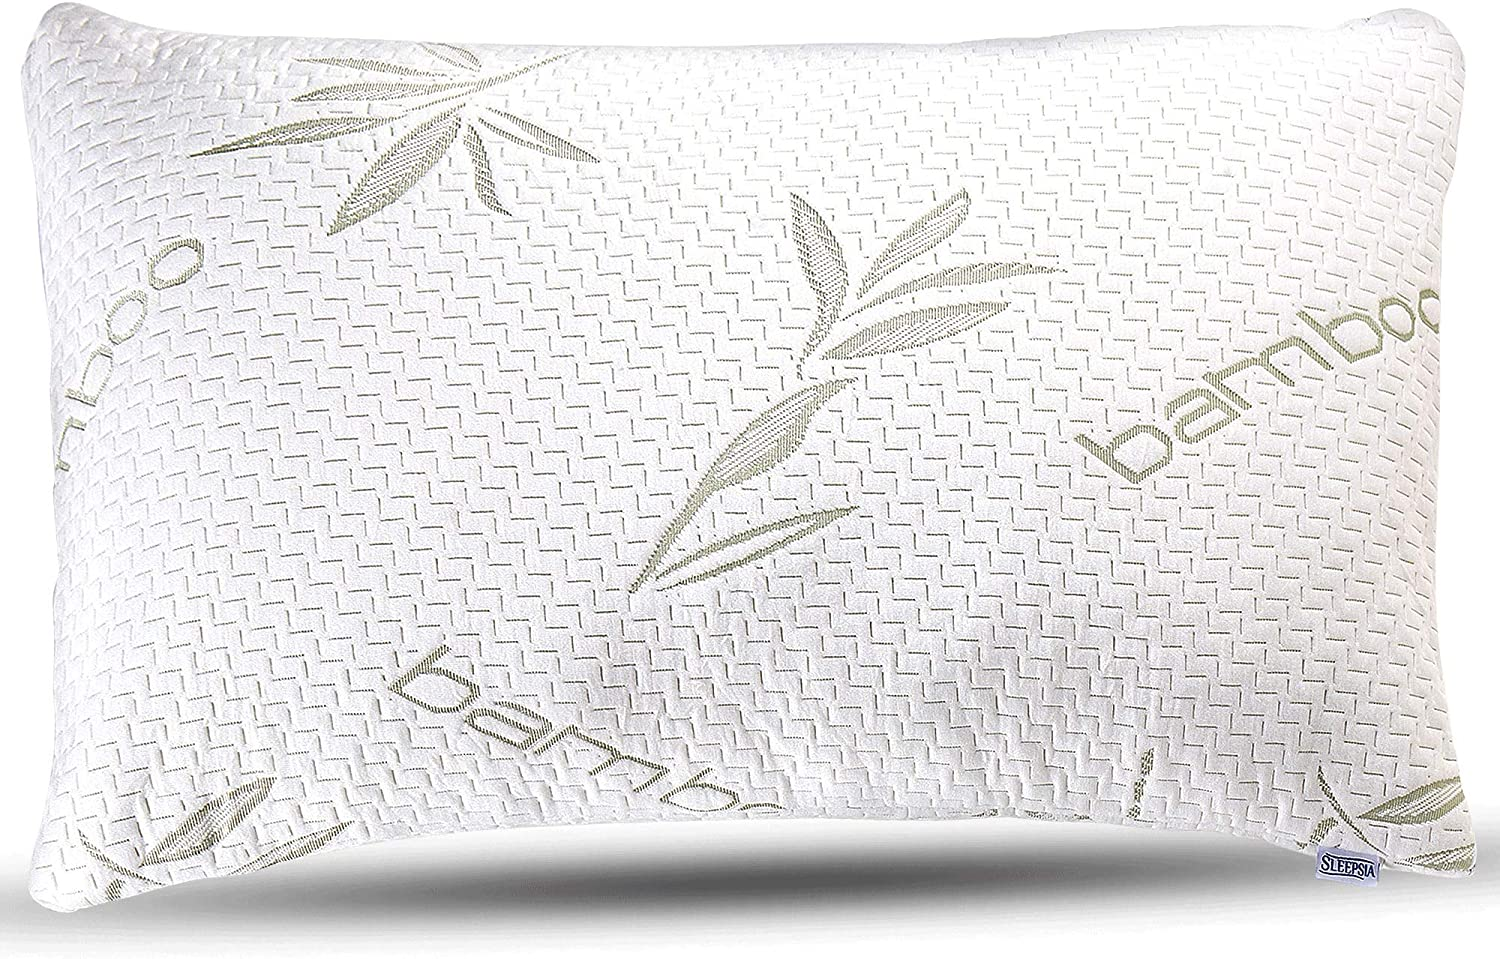 Sleepsia Bamboo Pillow - Premium Pillows for Sleeping - Memory Foam Pillow with Washable Pillow Case - Adjustable (King)